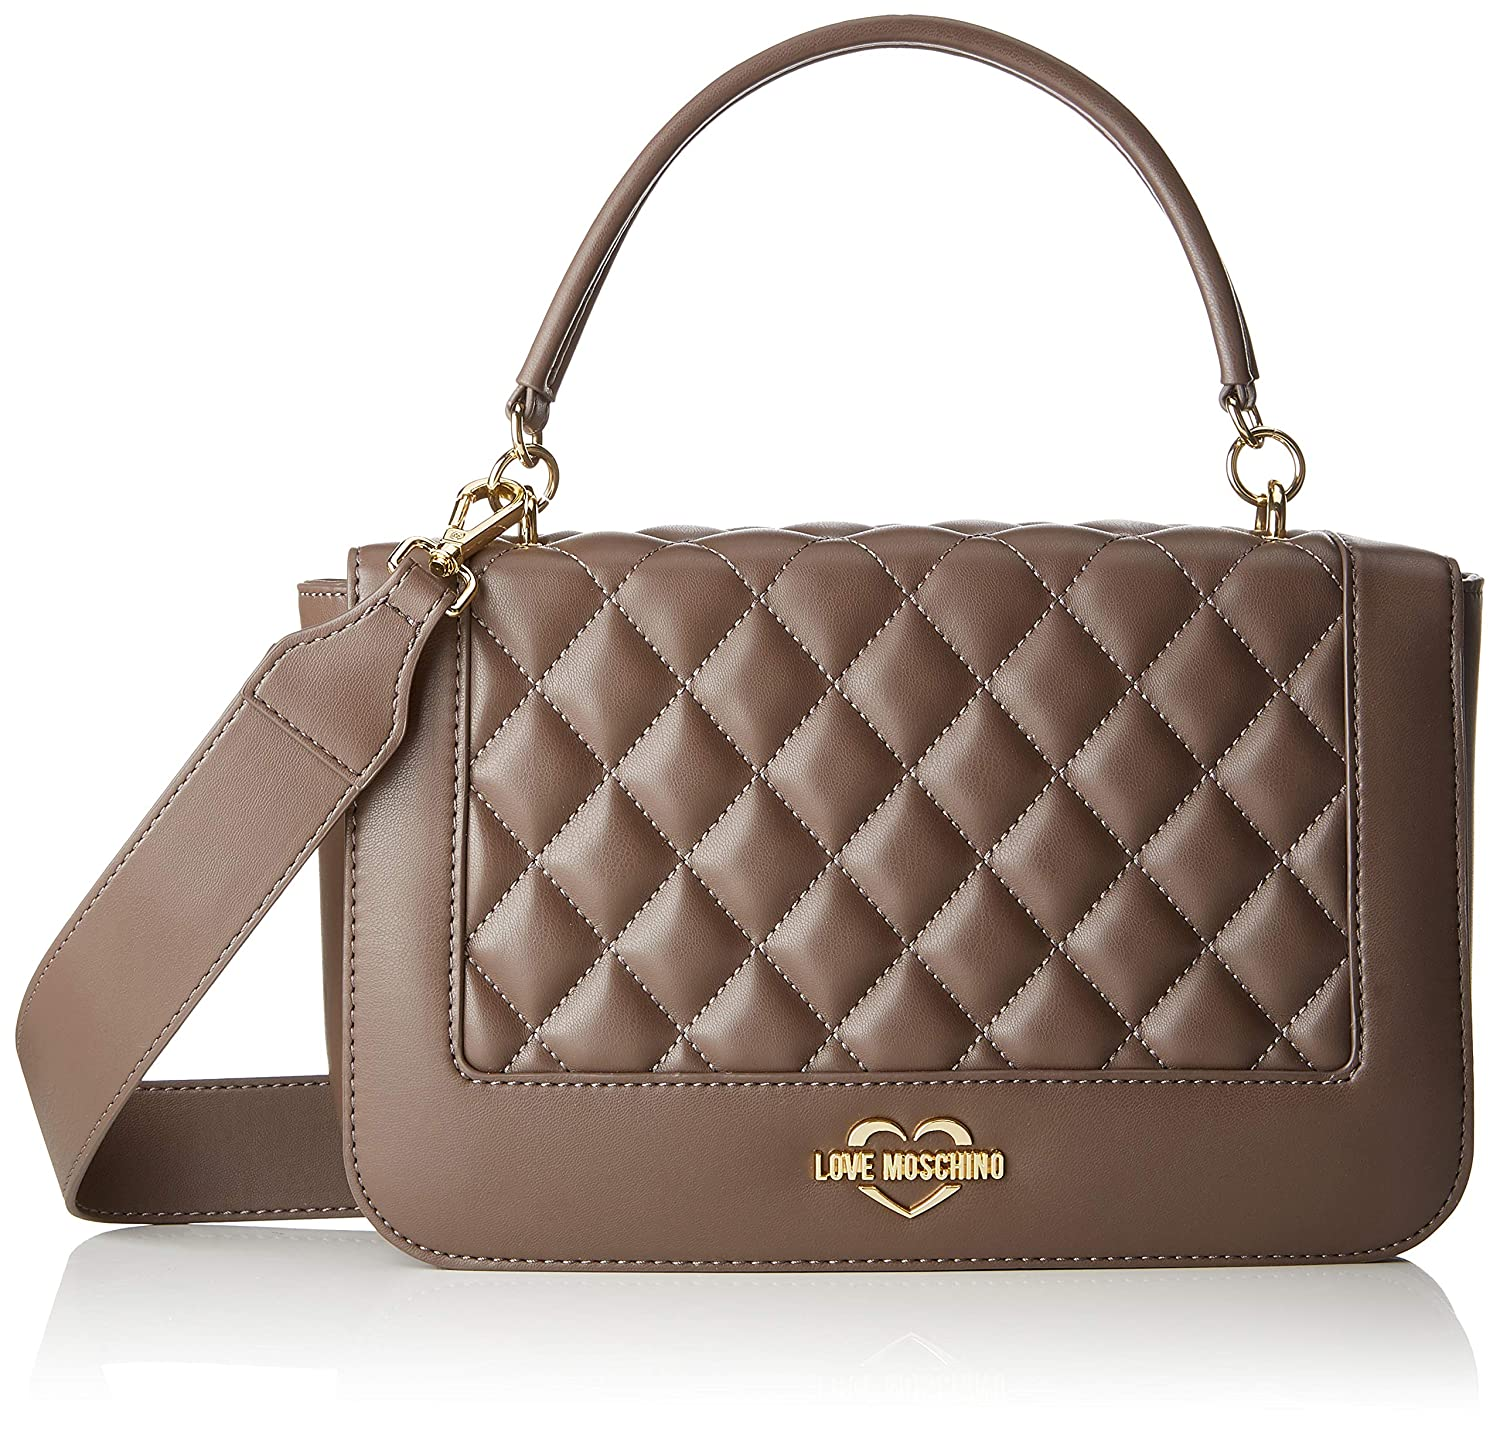 Love Moschino - Borsa Quilted Nappa Pu, Bolsos maletín Mujer, Gris (Taupe), 7x19x28 cm (B x H T): Amazon.es: Zapatos y complementos